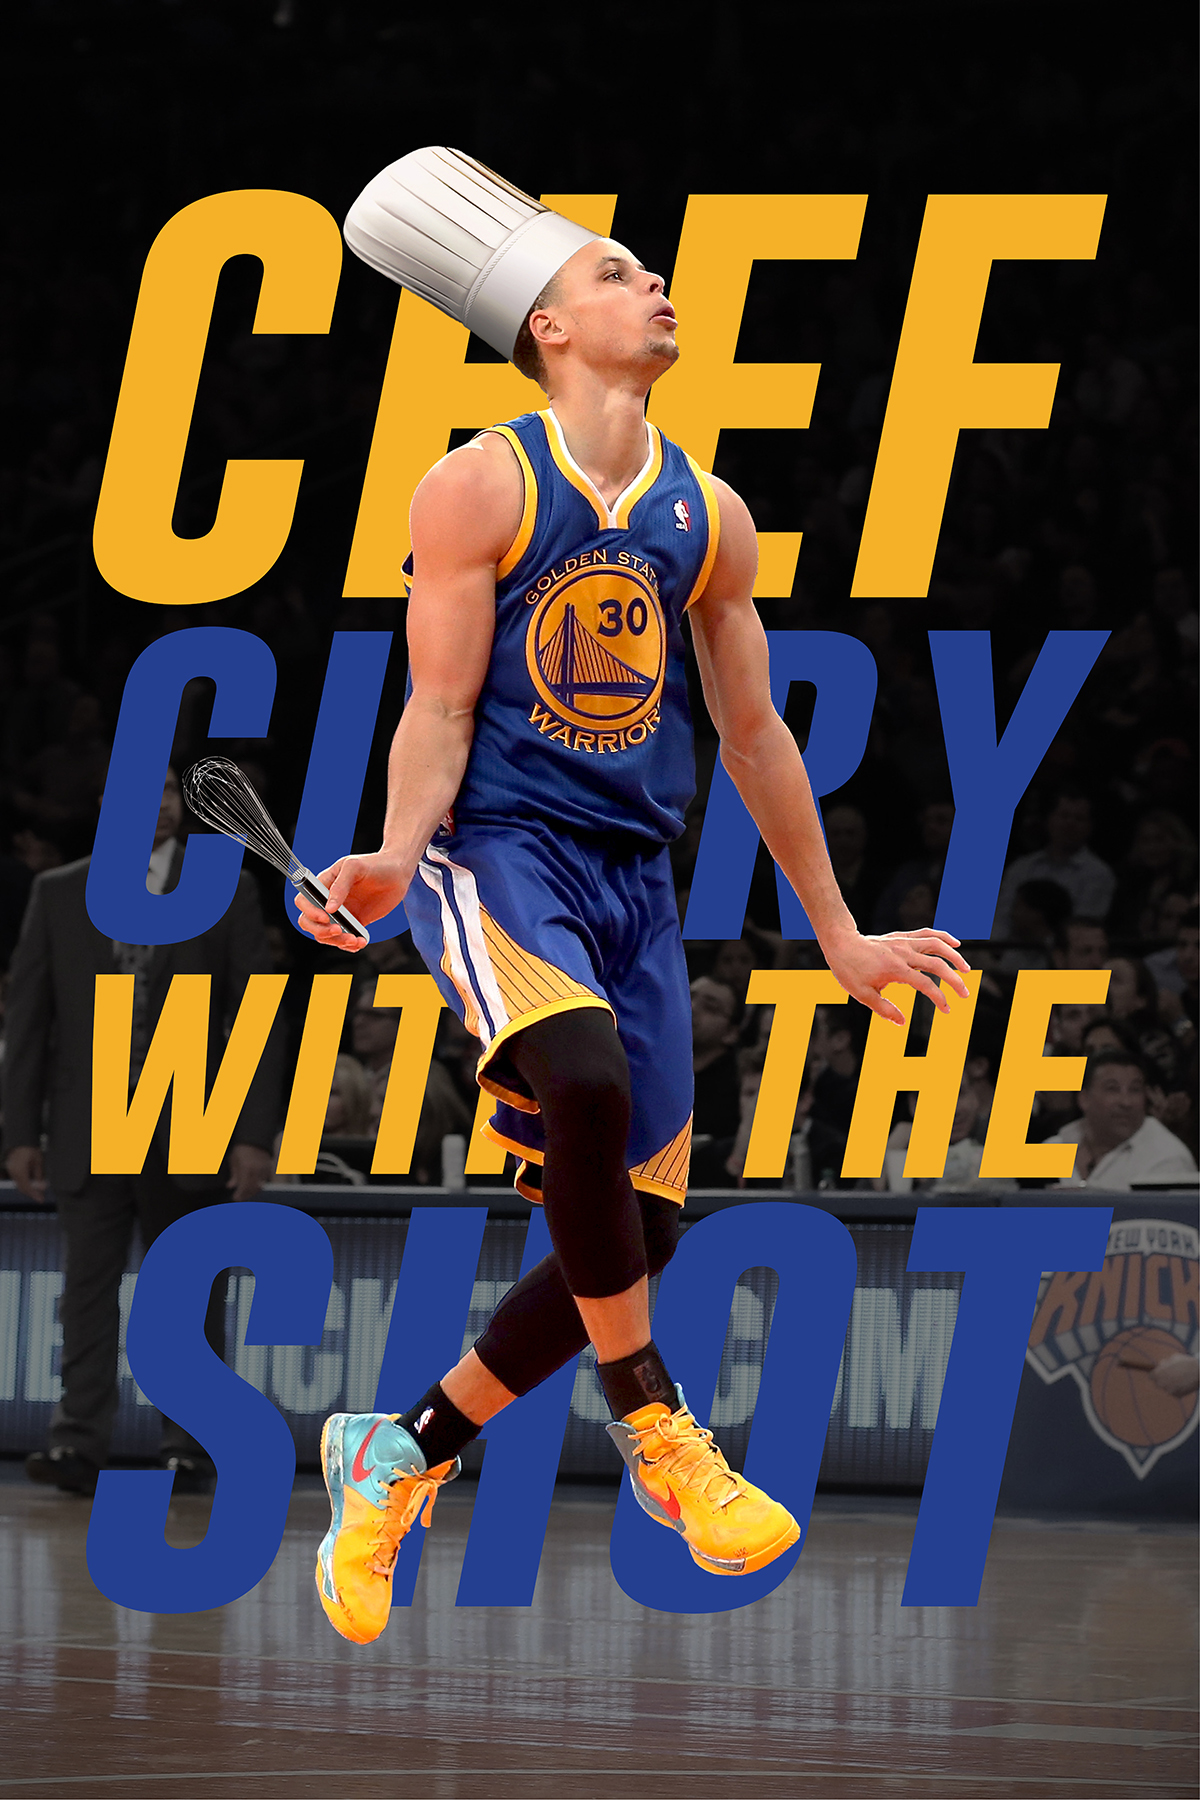 Steph Chef Curry Edit on Behance